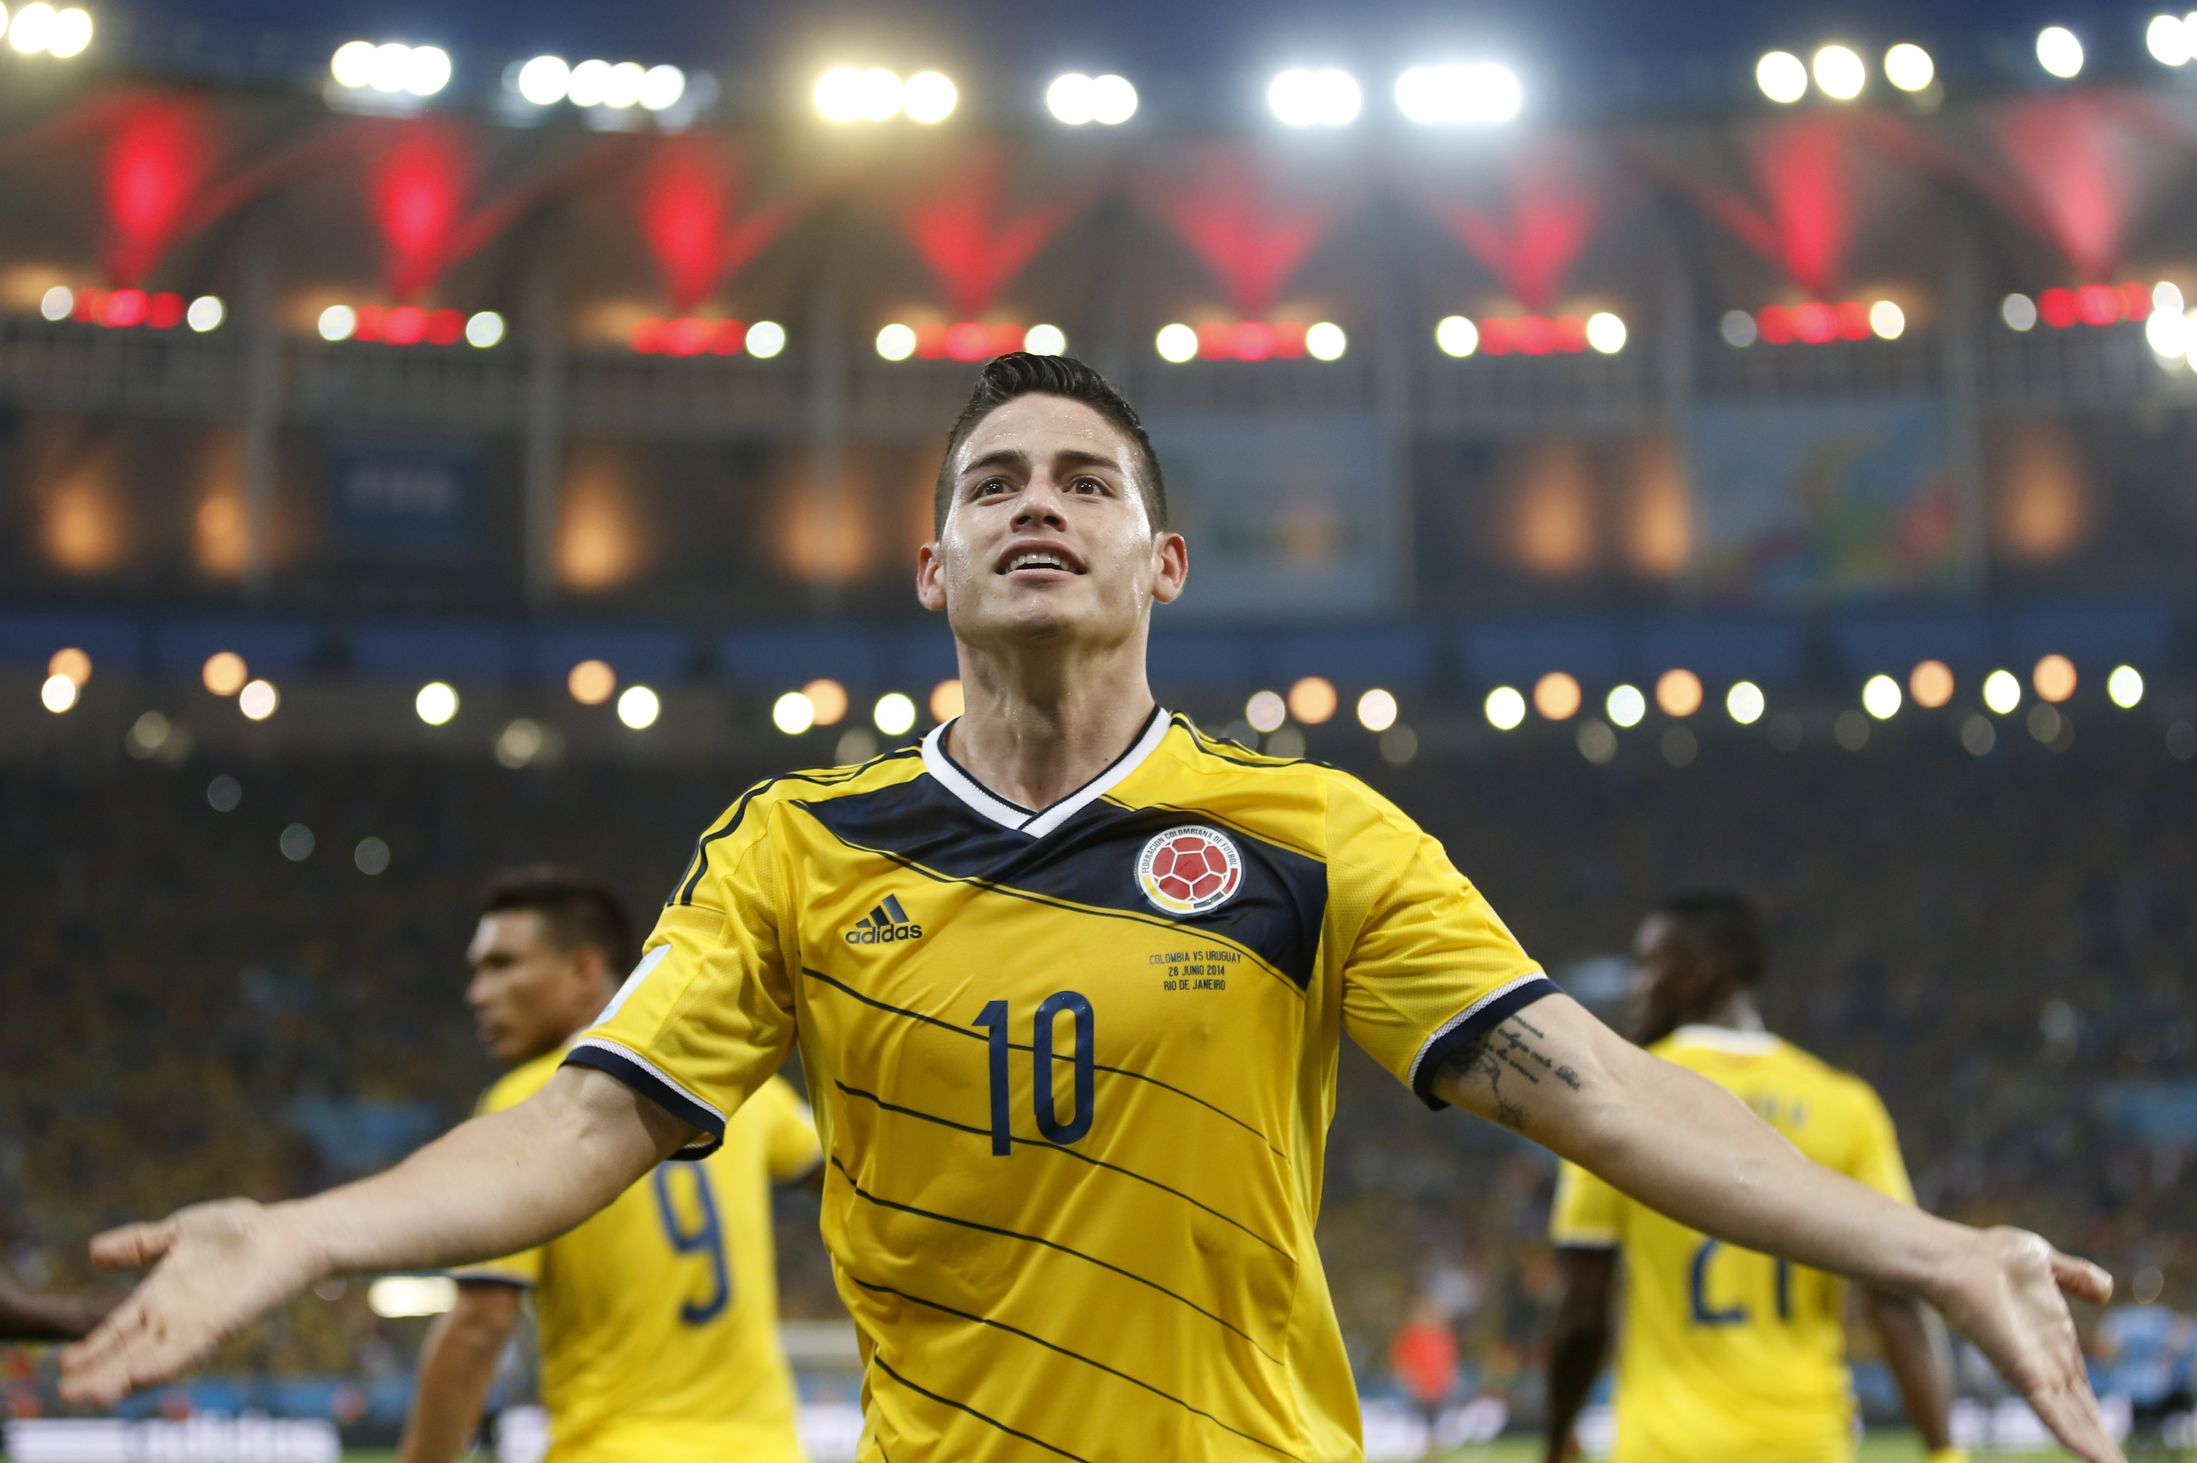 james-rodriguez-colombia-jersey-number-10